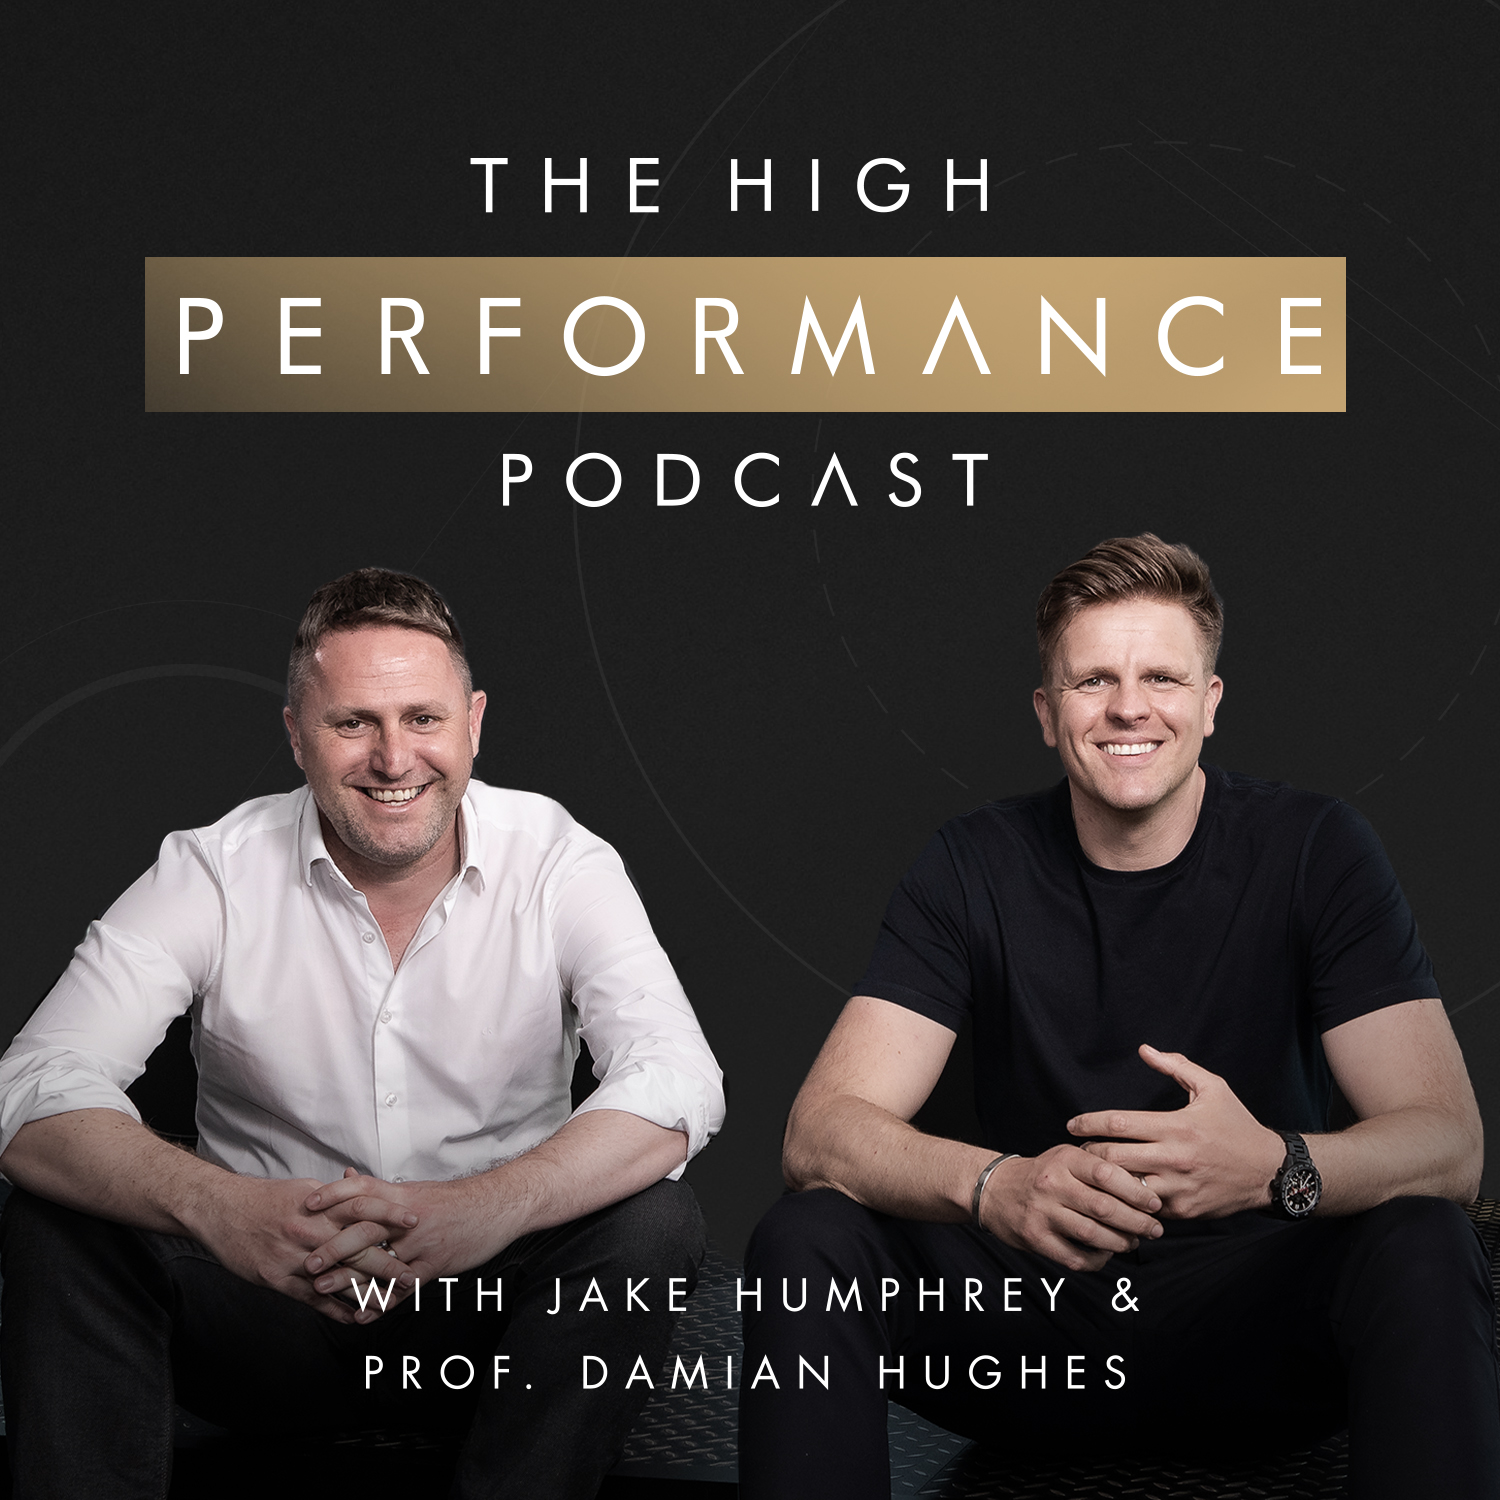 The High Performance Podcast show art